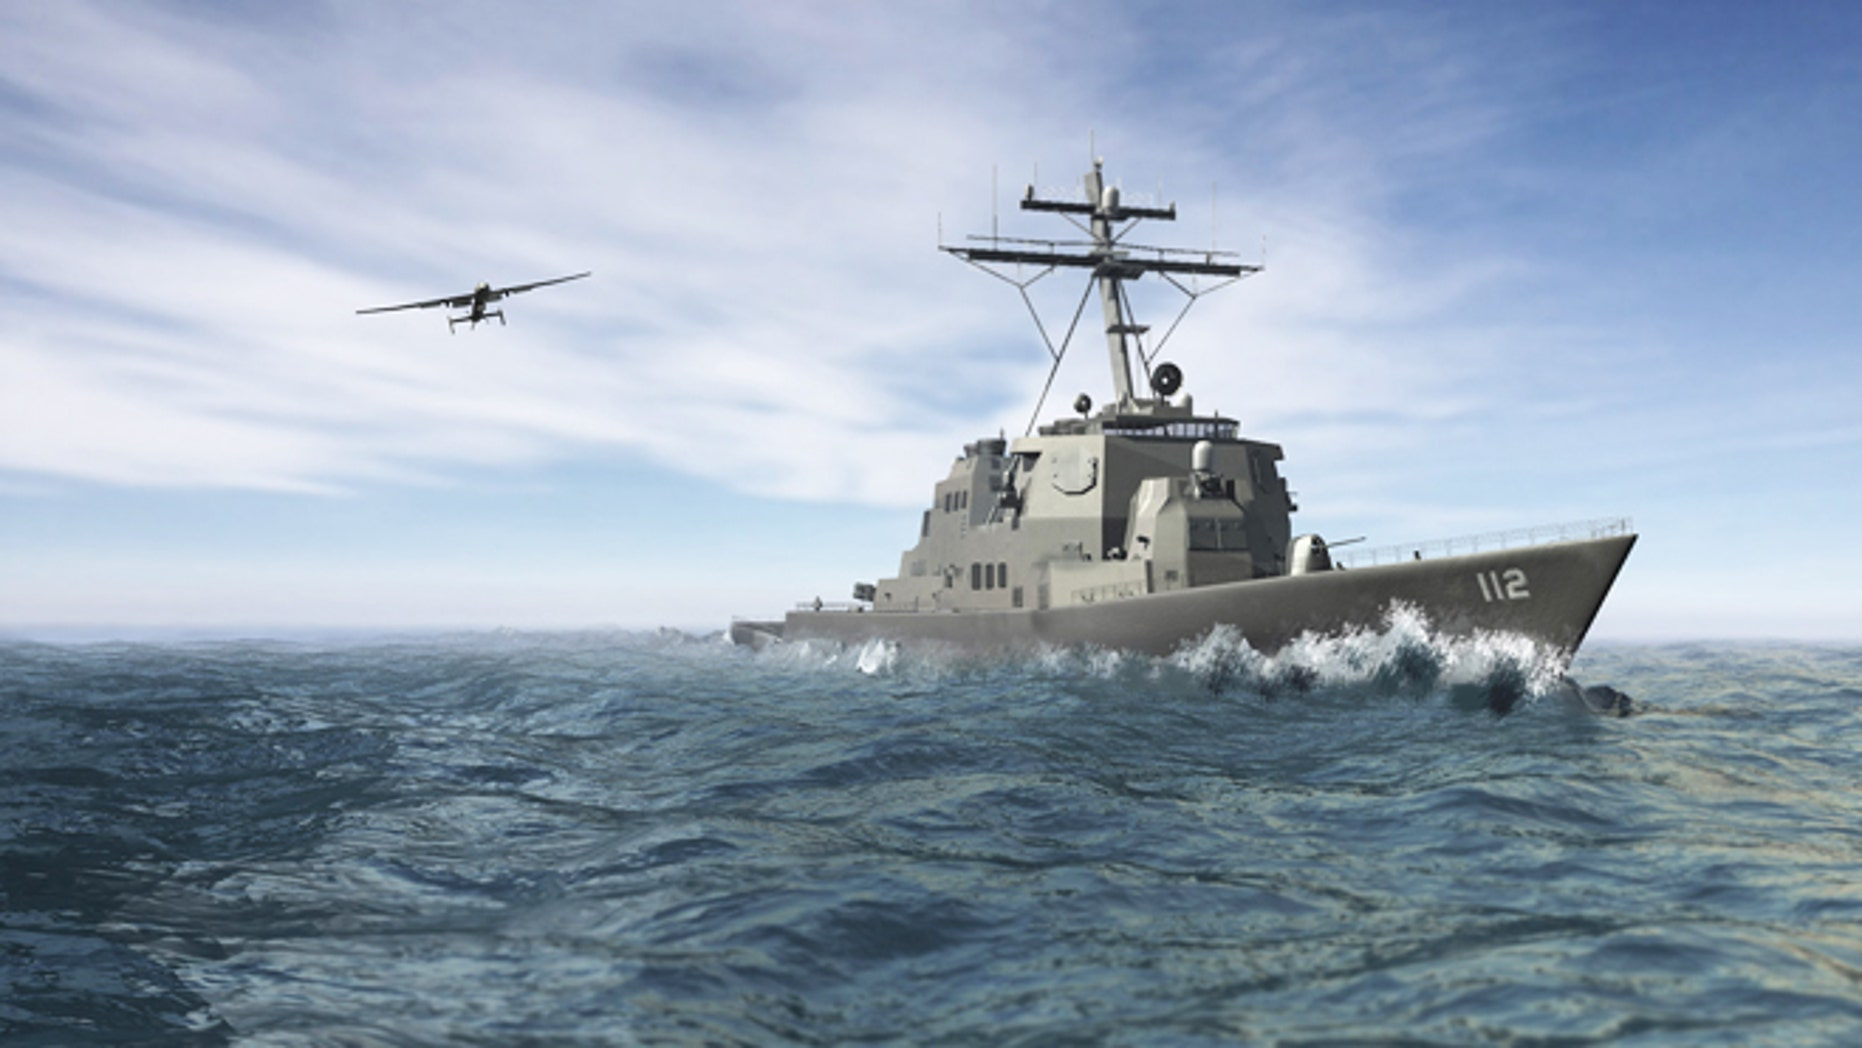 The military seeks a way to launch drones from smaller ships, greatly increasing their range for surveillance and intelligence.